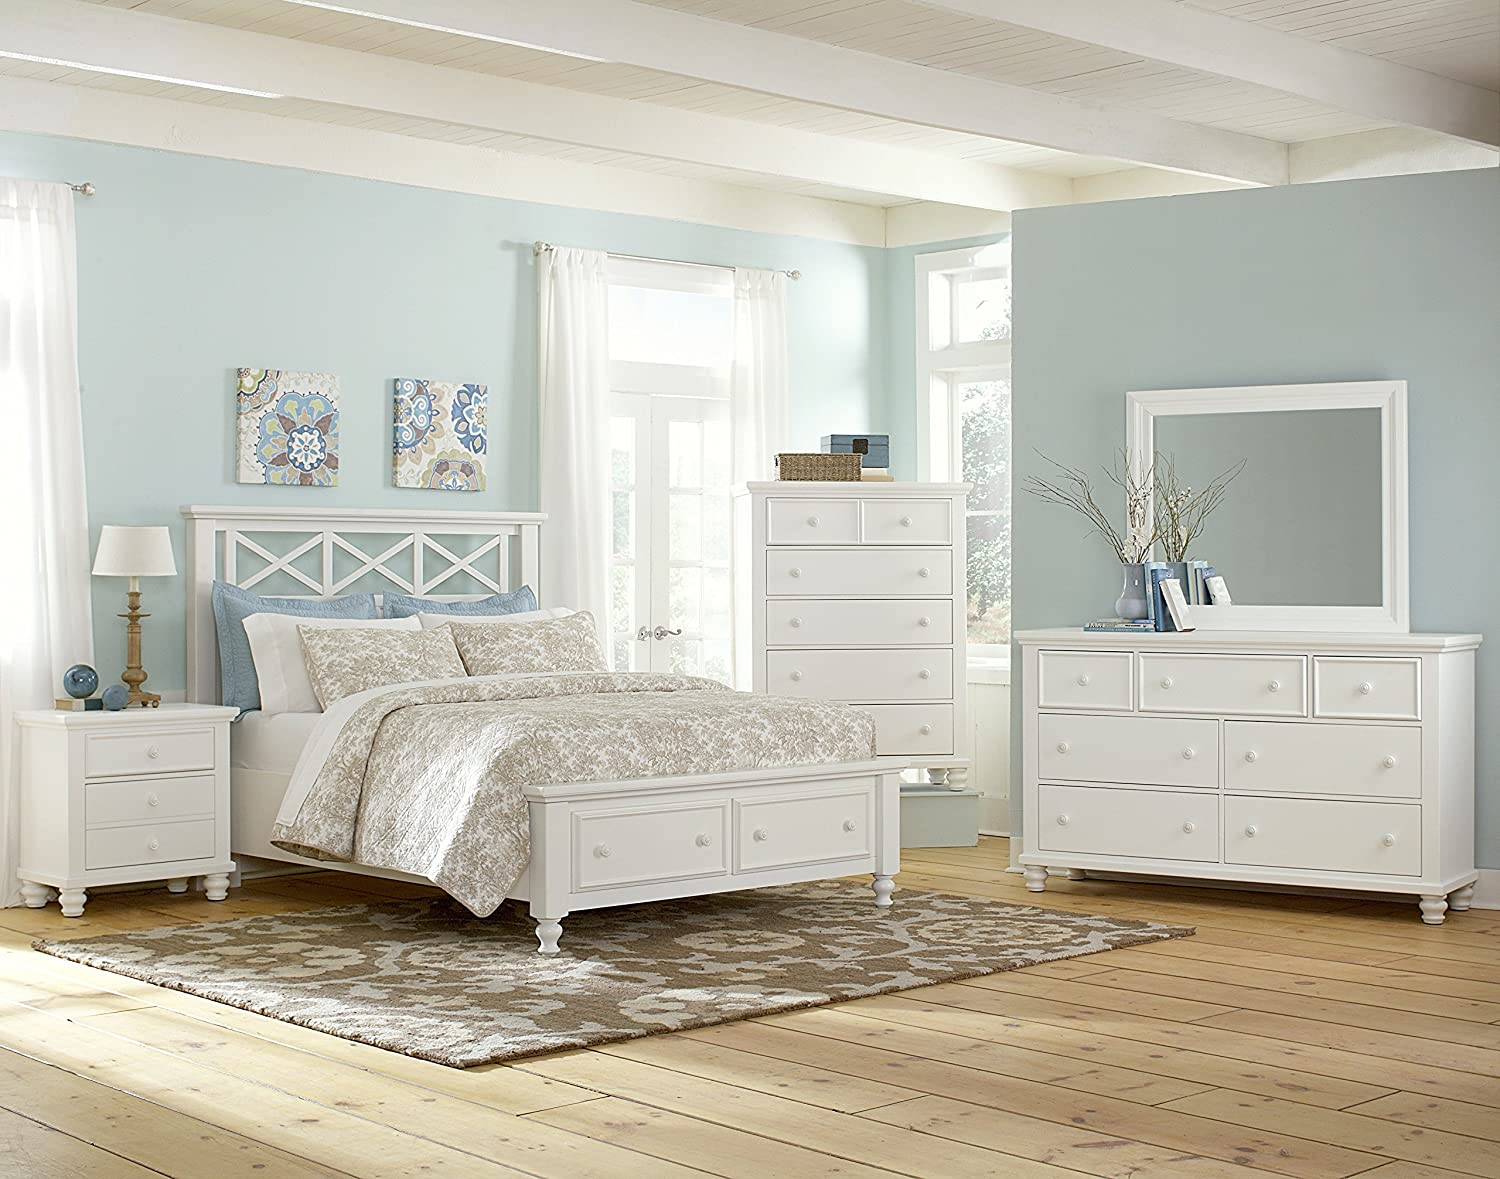 amazon com virginia house mcdowell collection garden storage bed queen white kitchen dining